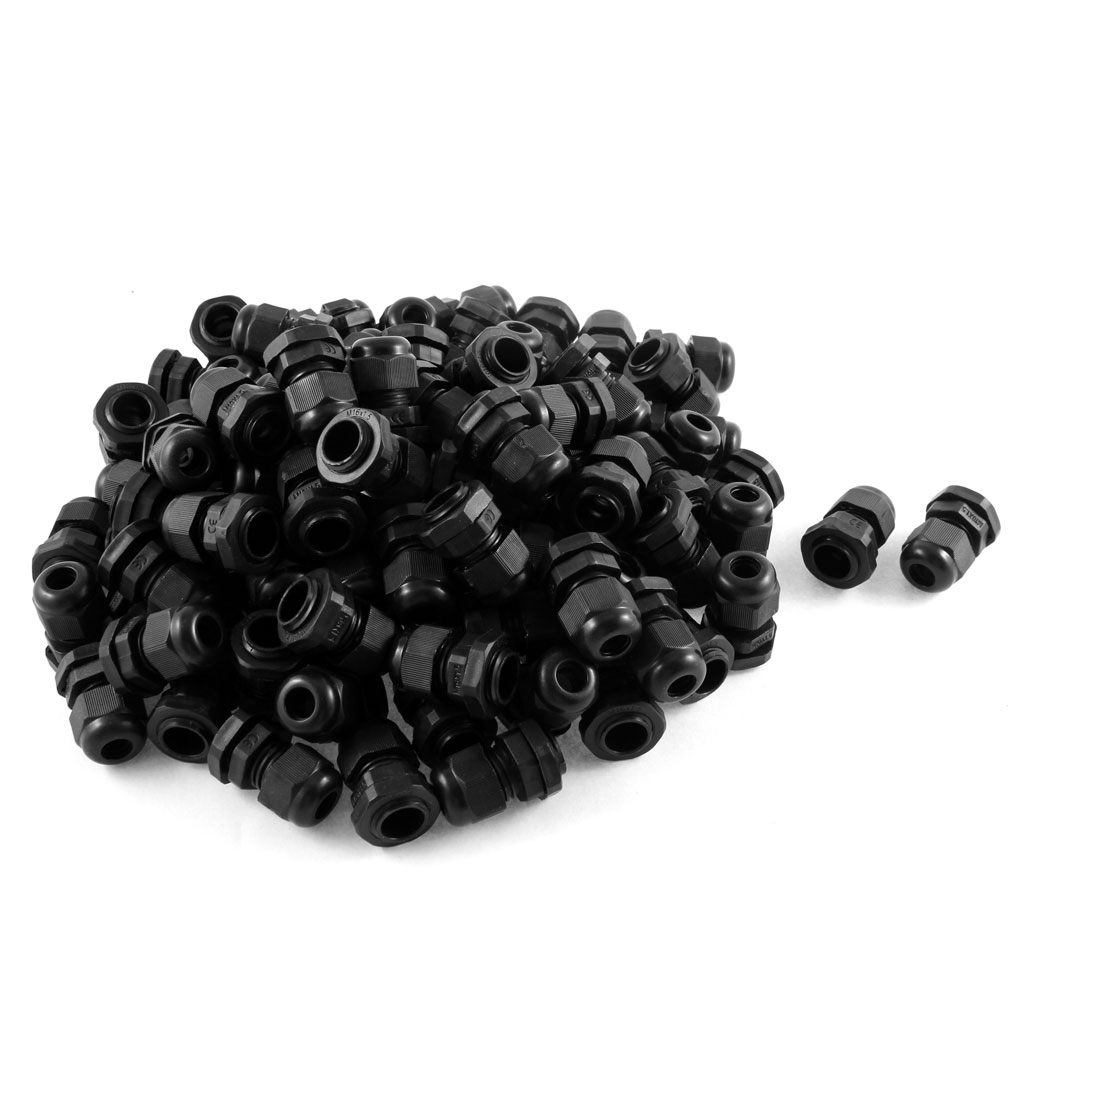 100 Pcs Black Plastic Waterproof Cable Glands Connectors M16 x 1.5